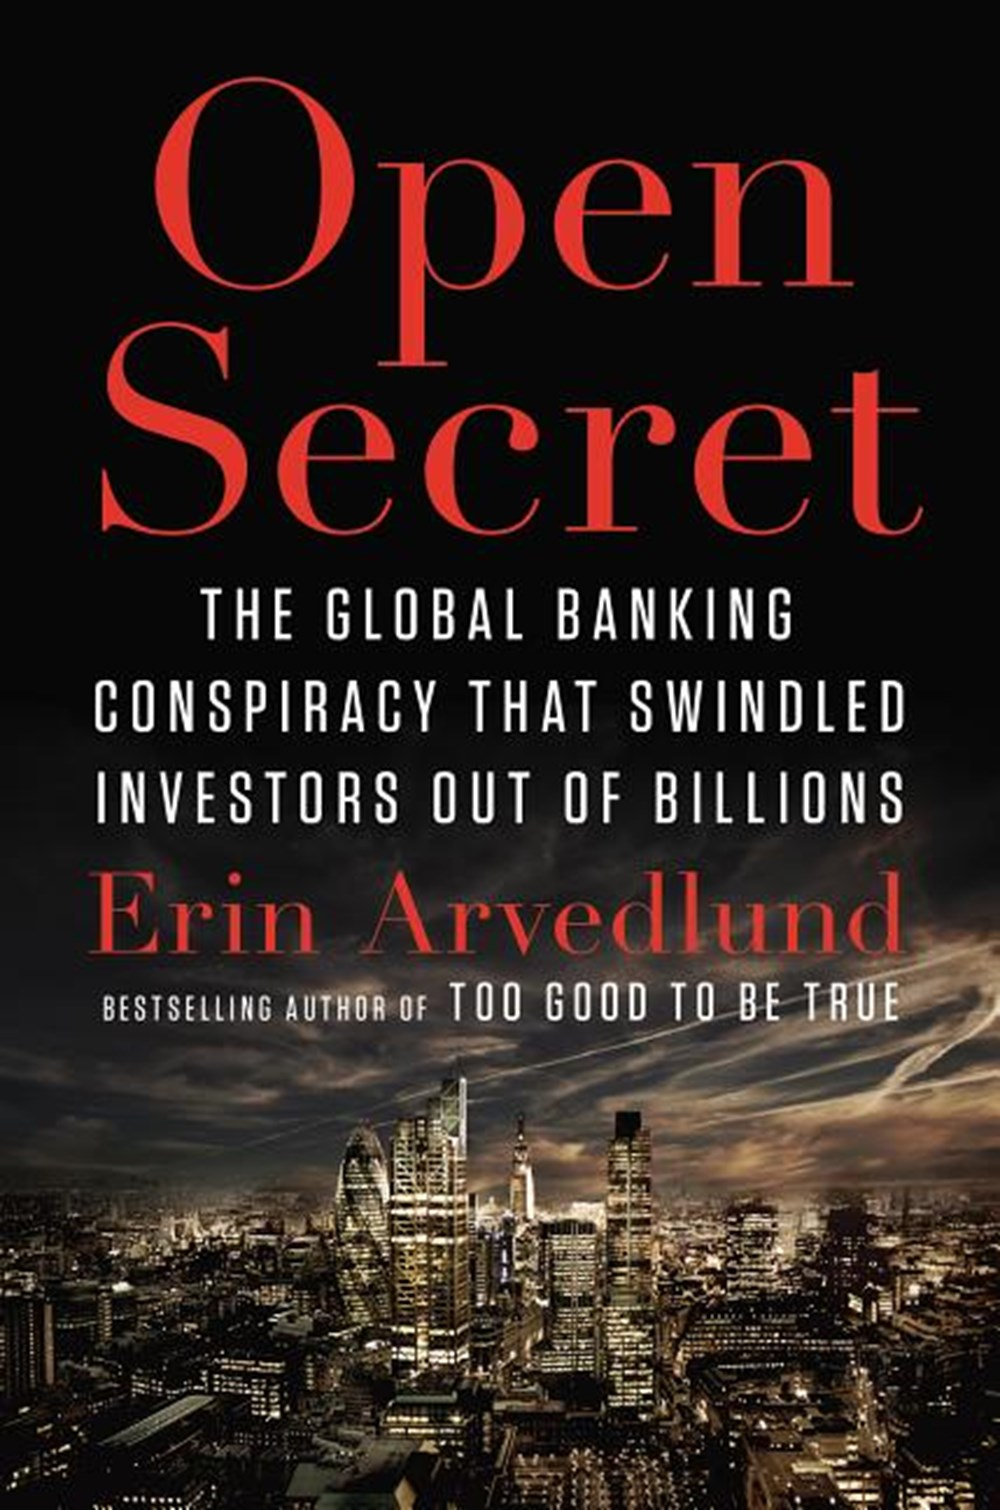 Open Secret The Global Banking Conspiracy That Swindled Investors Out of Billions